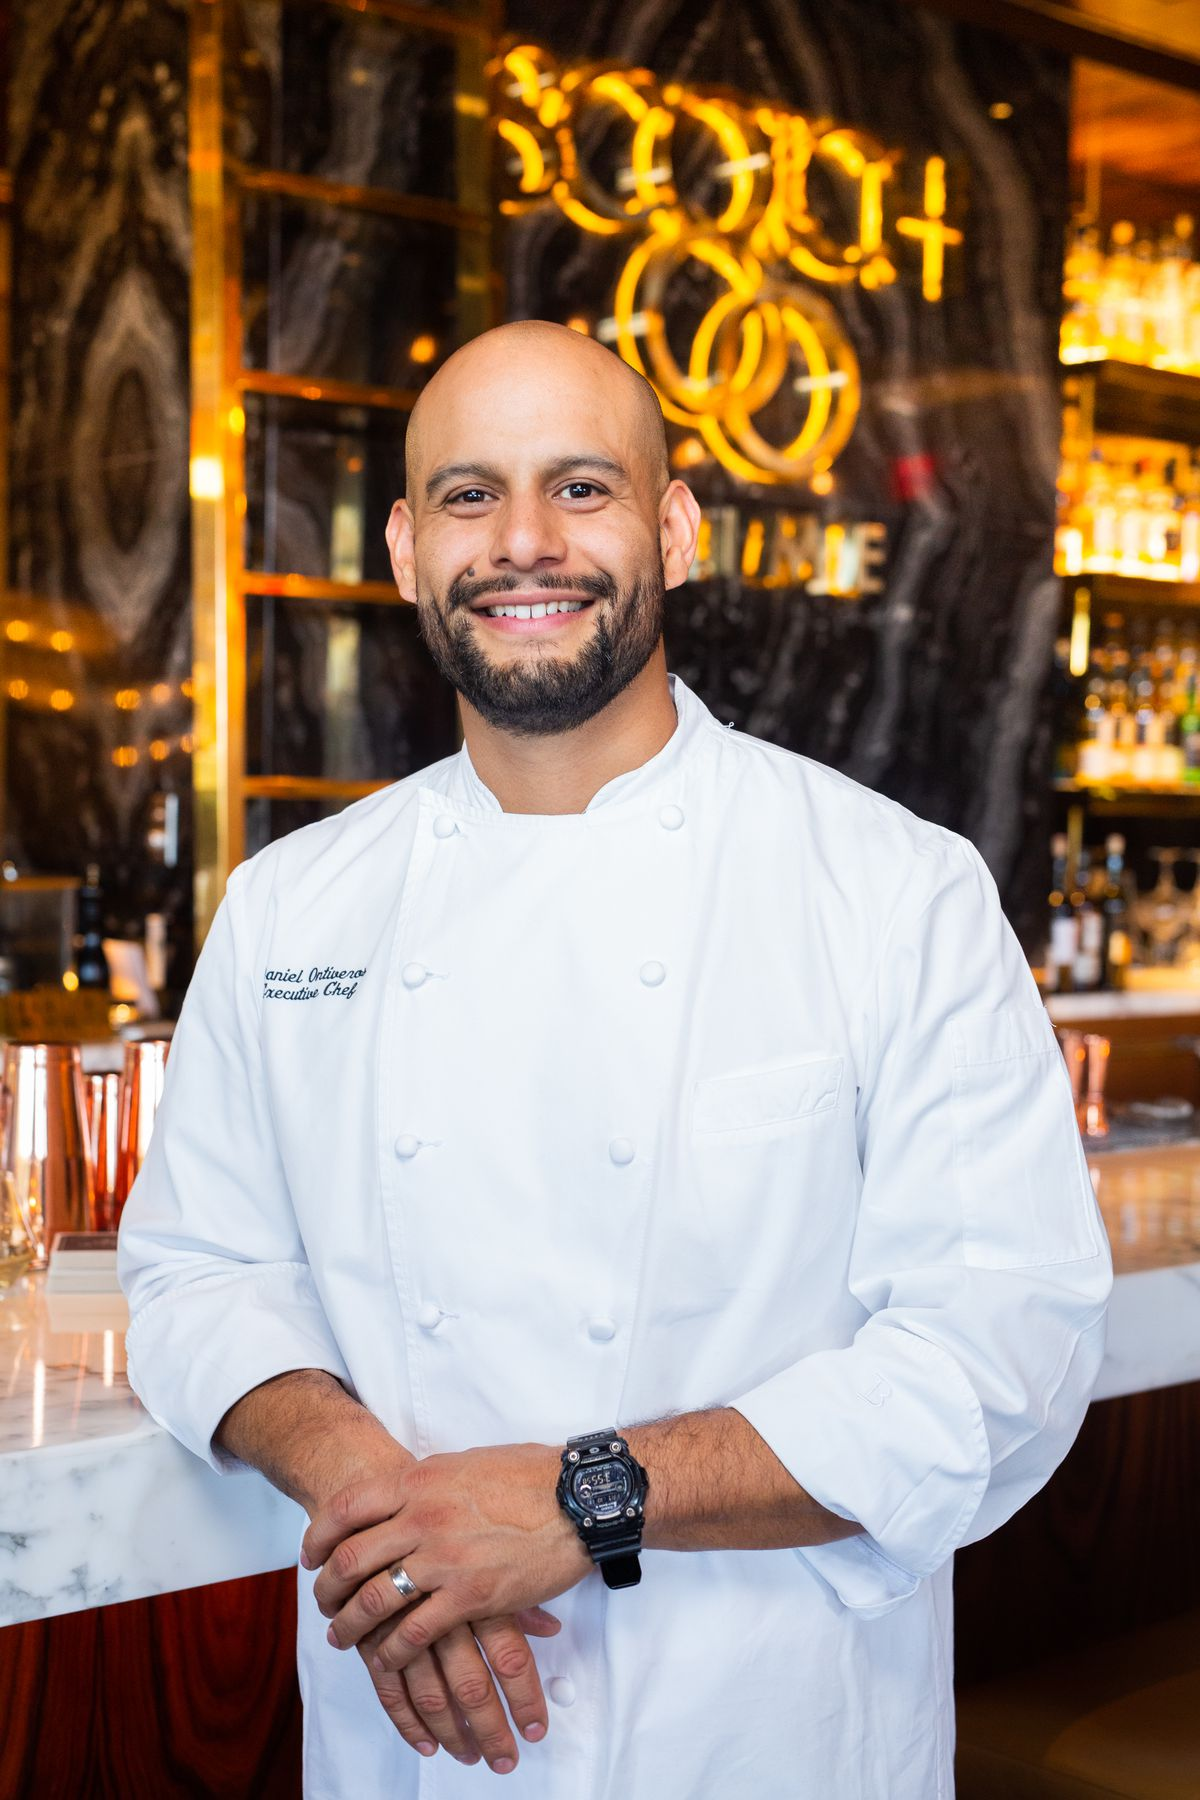 A chef poses in a white jacket